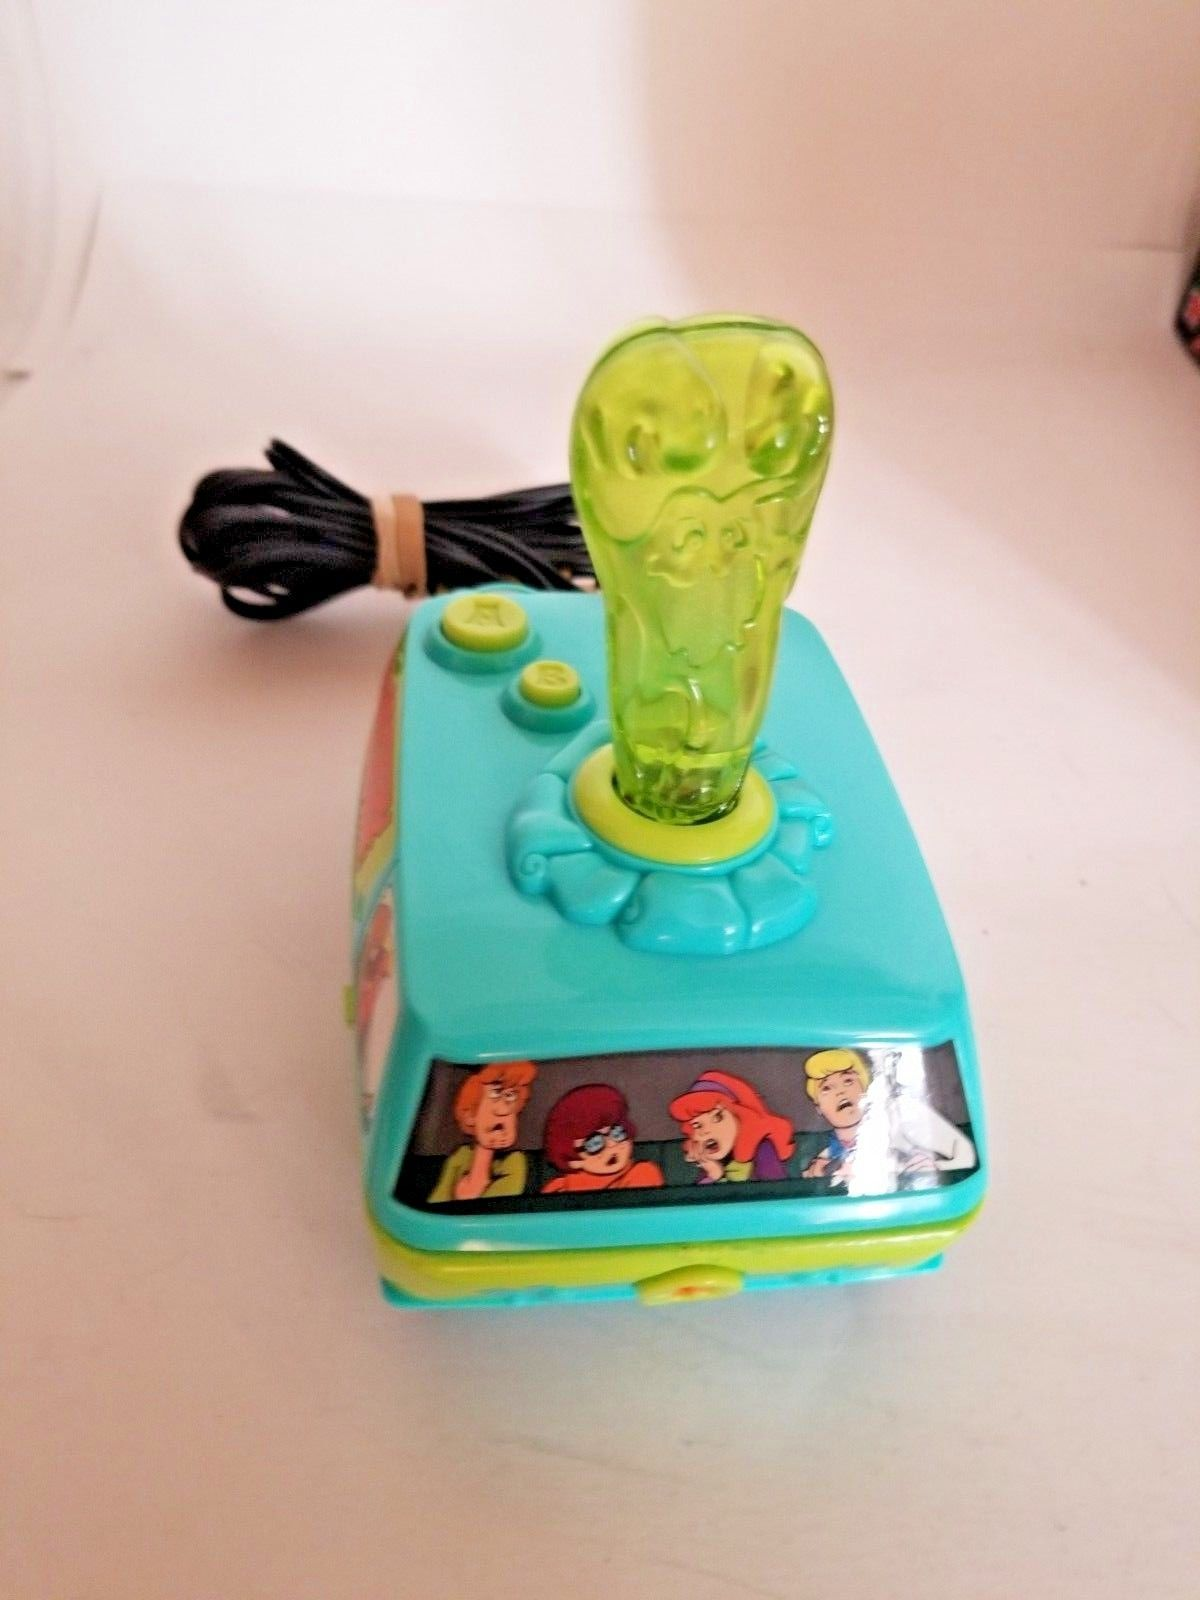 Scooby-Doo TV Games (TV game systems, 2008)